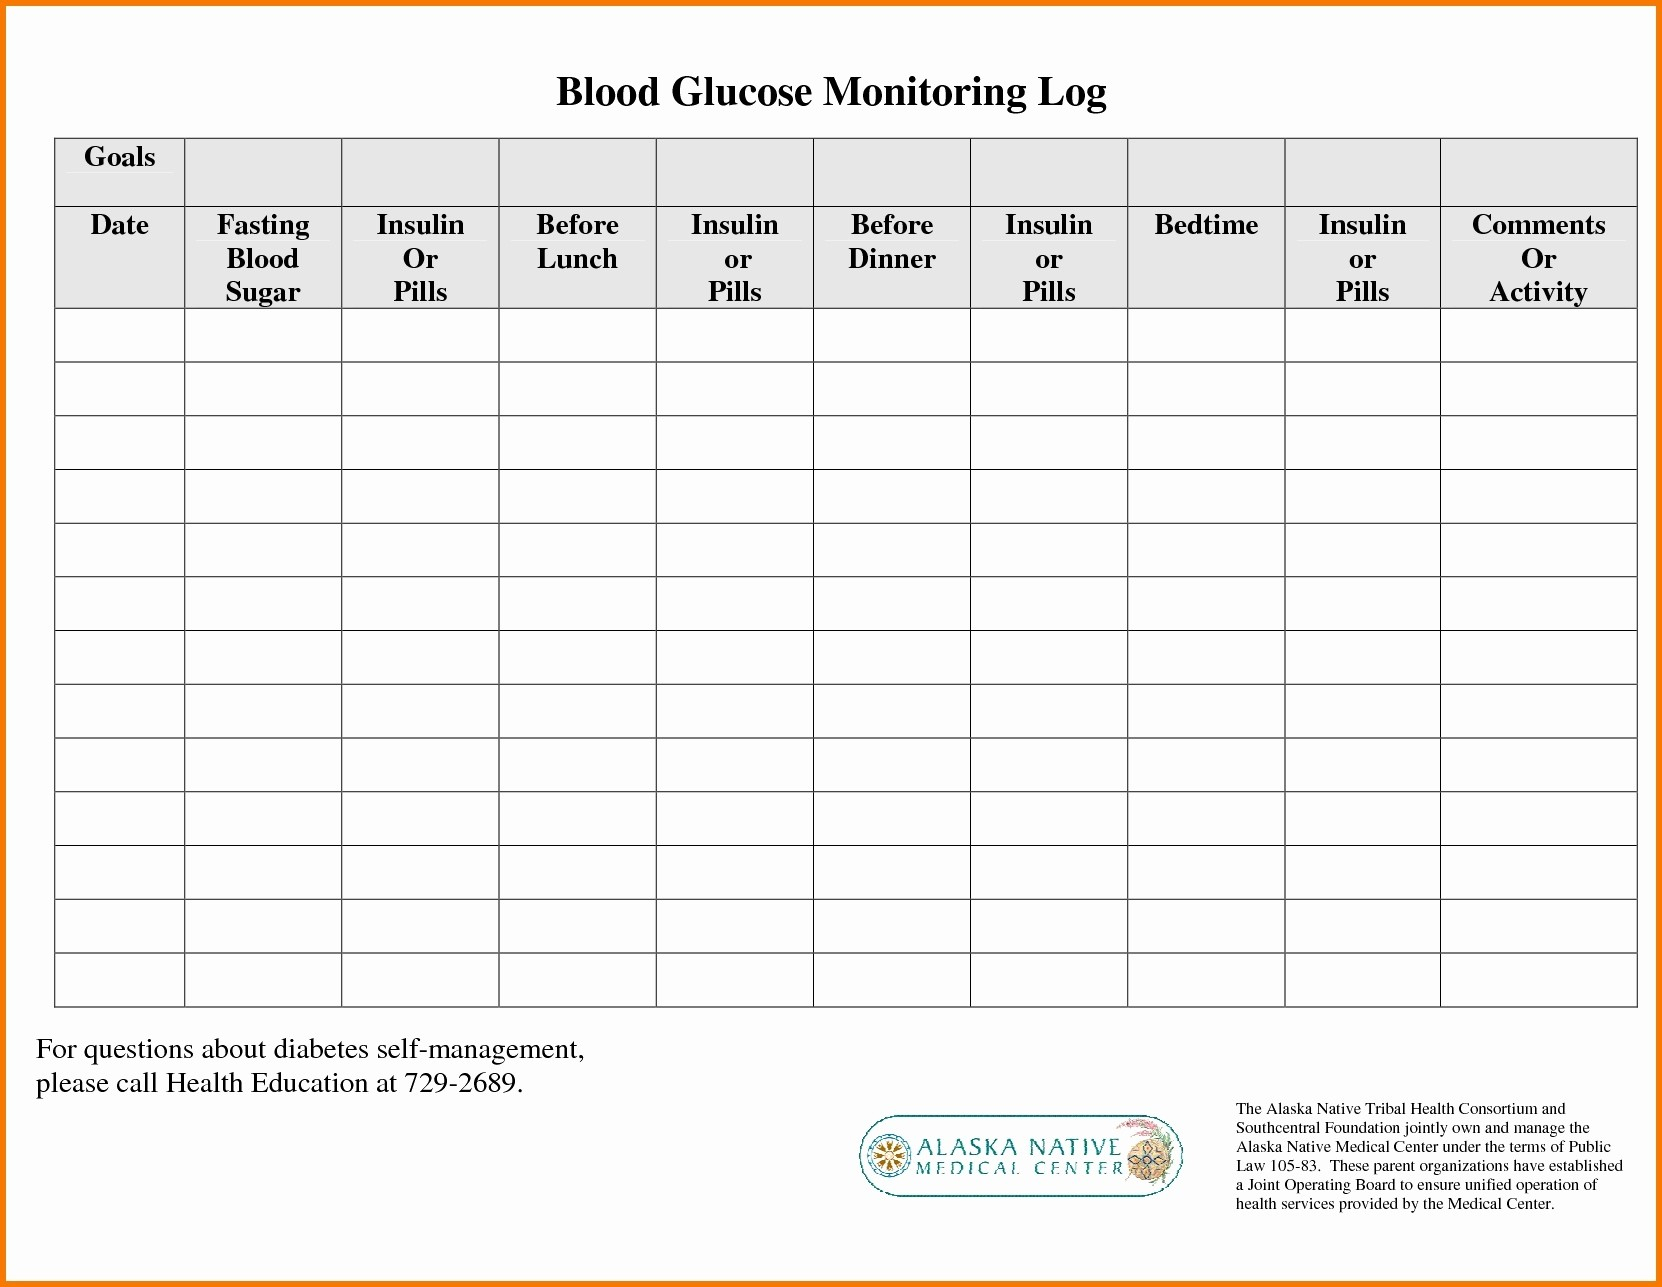 Diabetes Glucose Log Spreadsheet For Printable Blood Sugar Chart Template Unique Printable Blood Sugar Diabetes Glucose Log Spreadsheet Printable Spreadshee Printable Spreadshee diabetes glucose log spreadsheet